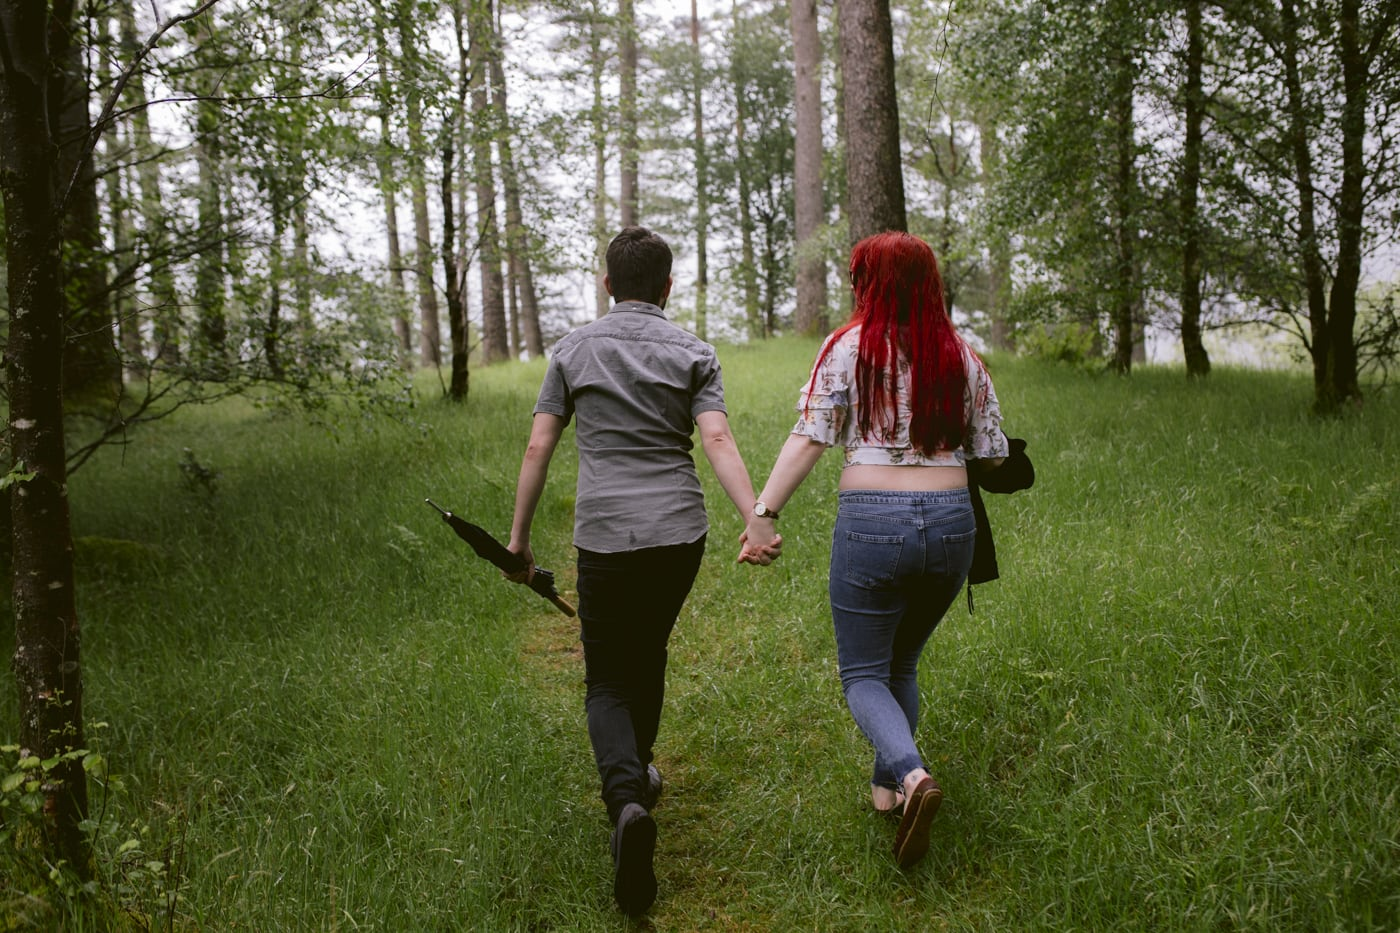 Couple Hand in Hand Walking on Grass in Forest Portrait Session